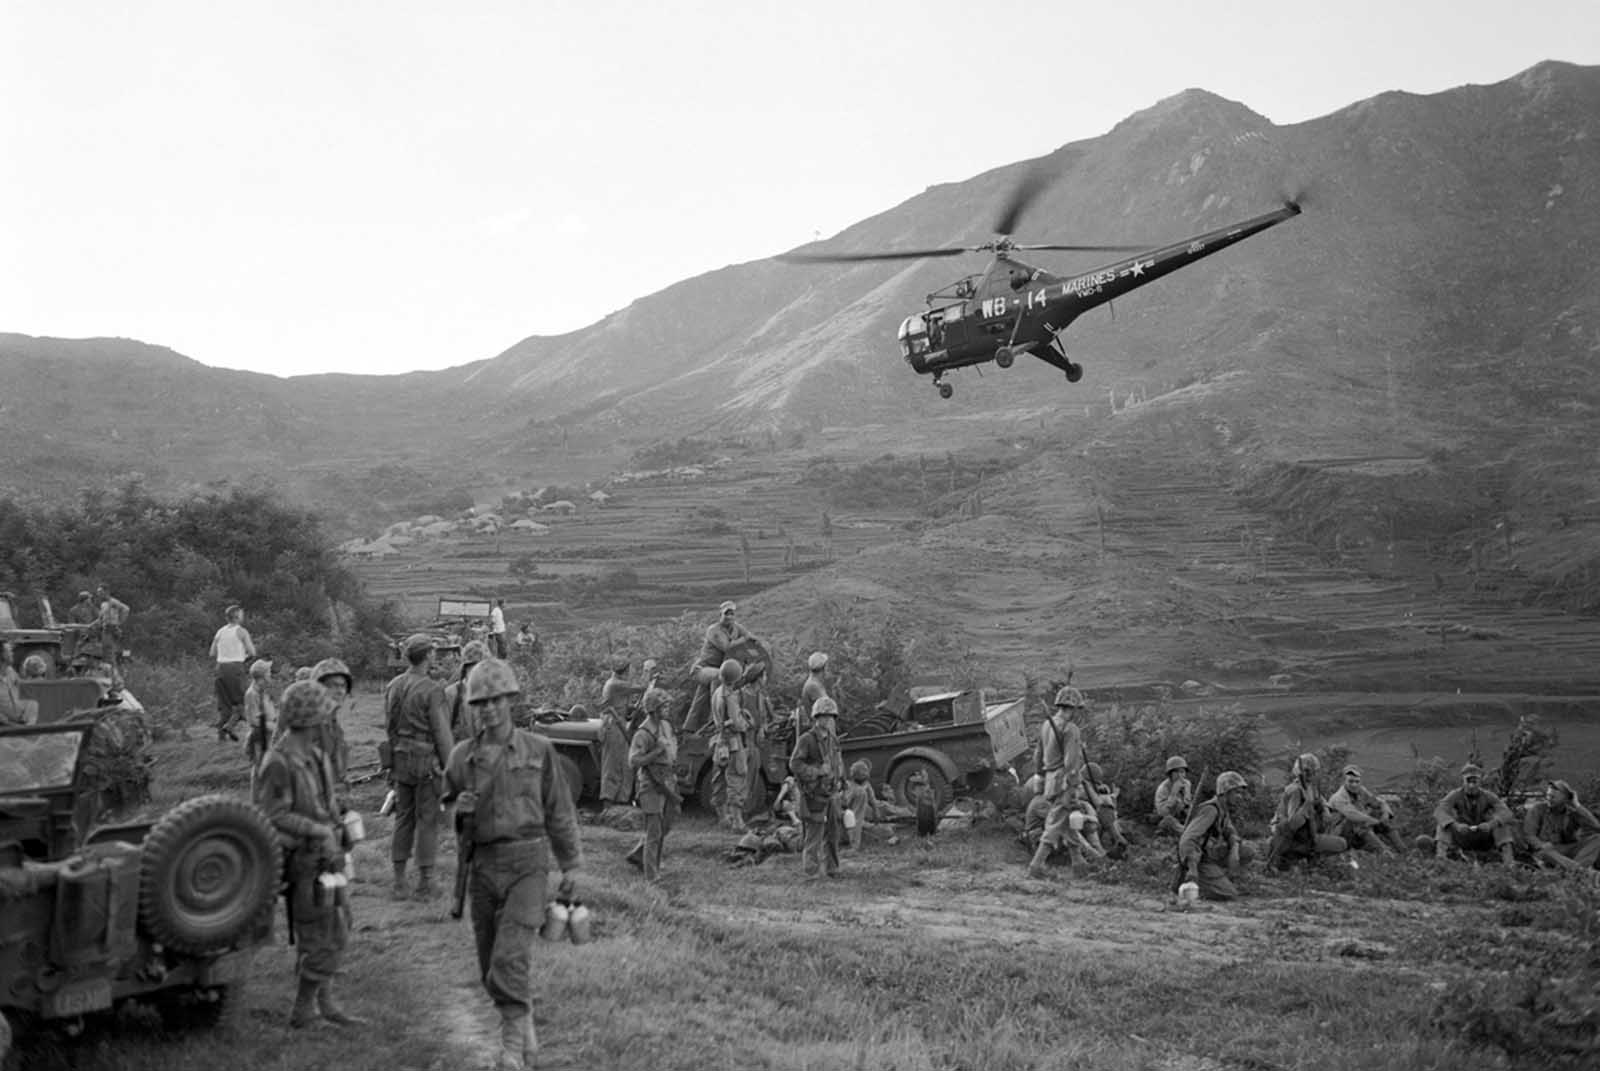 Helicopters were used on the battlefront as liaison planes and for evacuating the wounded. Here, one of the helicopters takes off over the heads of First Marine Division troops in a forward position on a mountain slope.